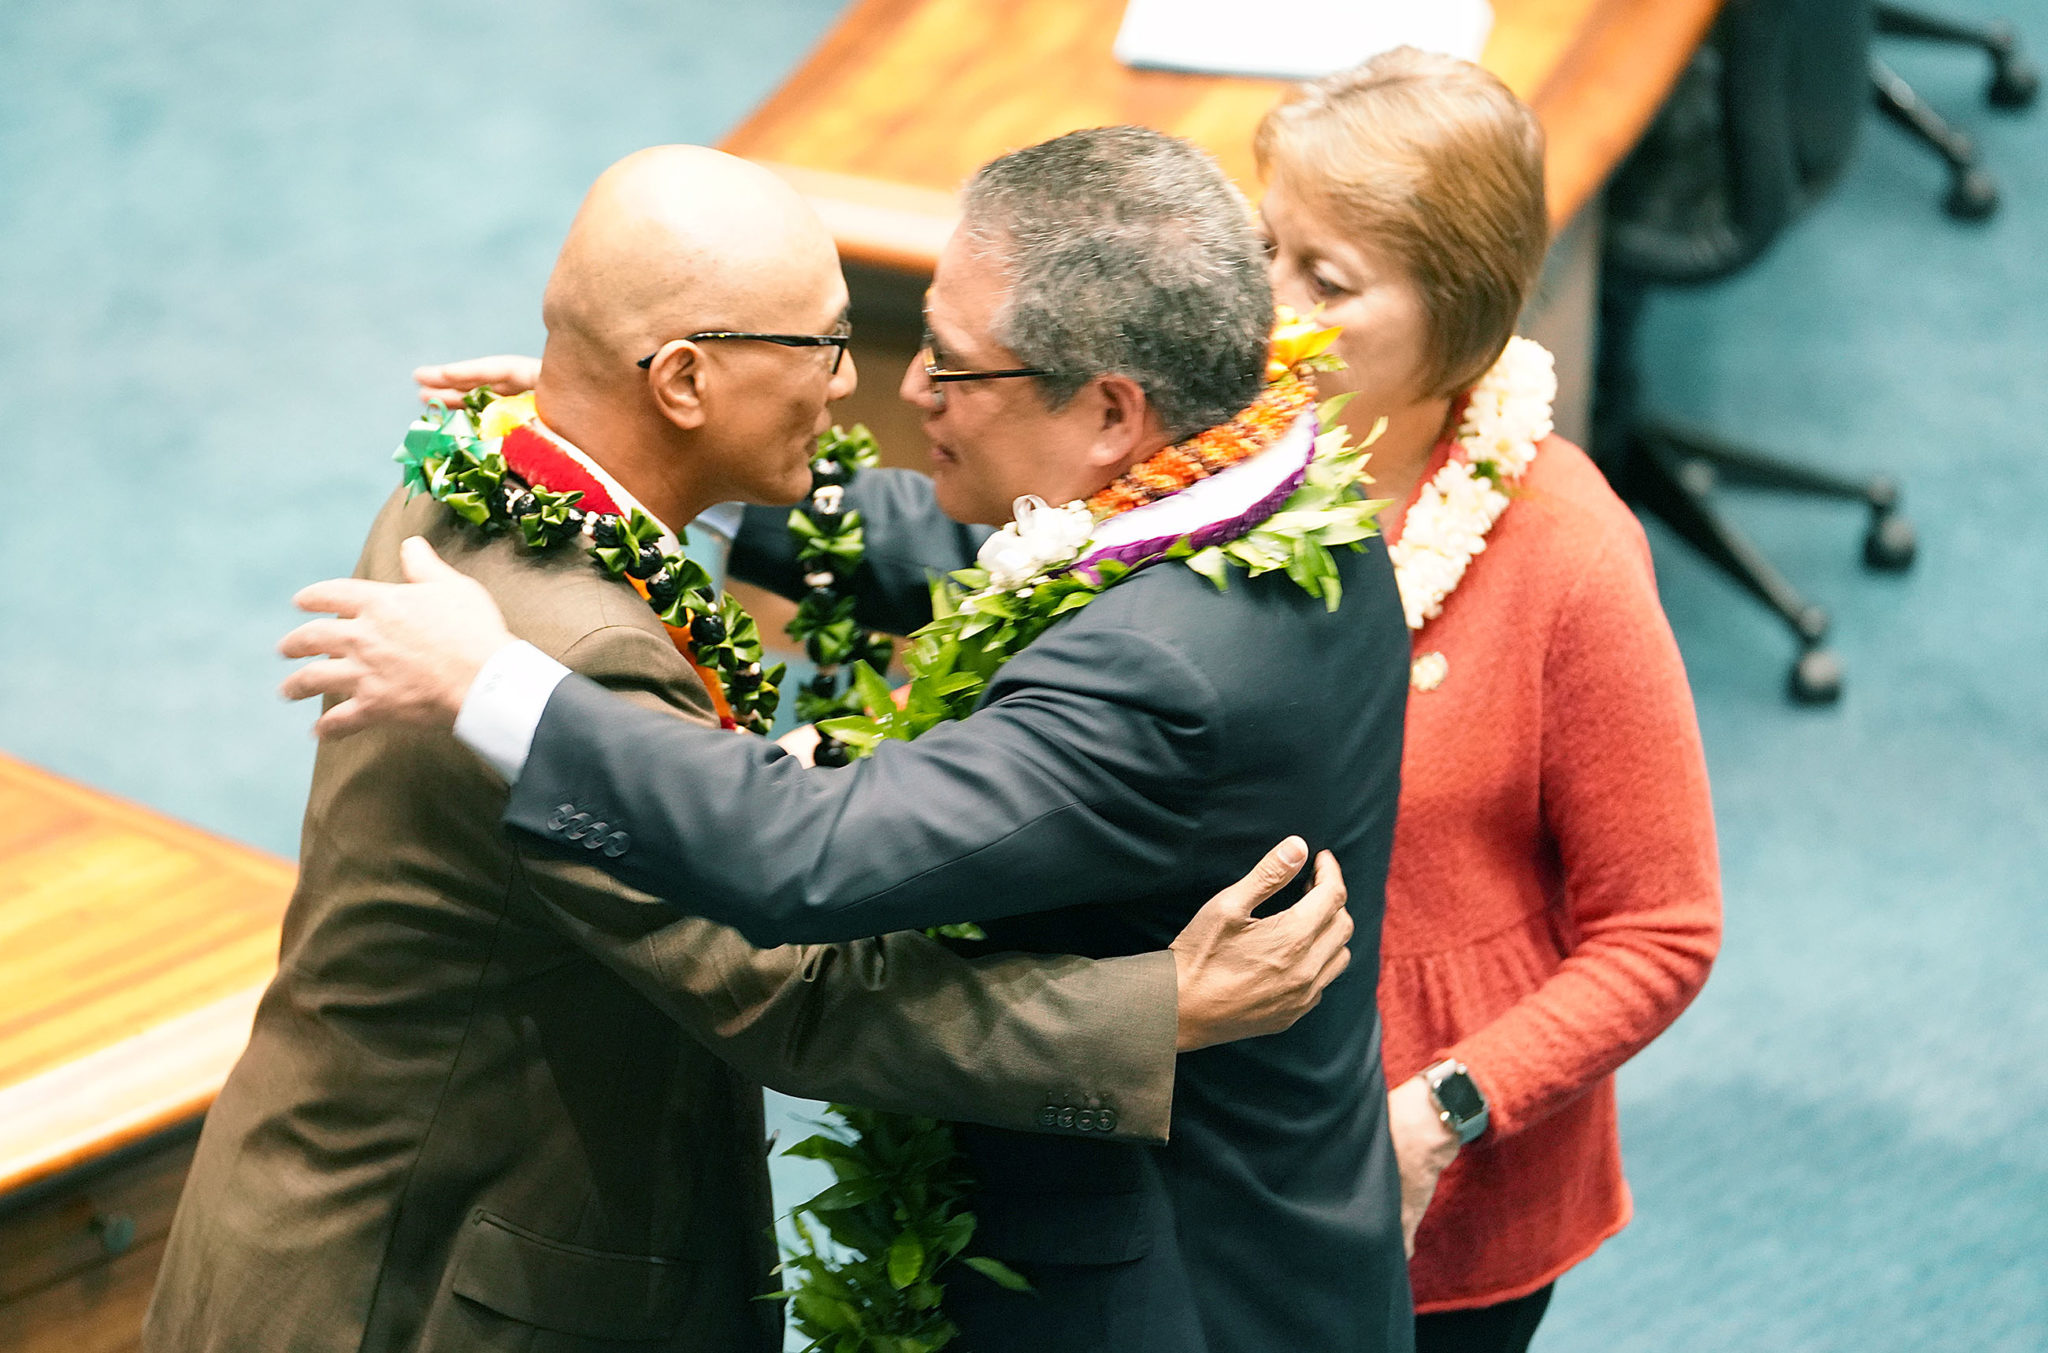 <p>Senate Majority Leader J. Kalani English presents a lei to Sen. Will Espero, left, during a recess. Espero, who represents Ewa Beach, is leaving his post to run for lieutenant governor.</p>